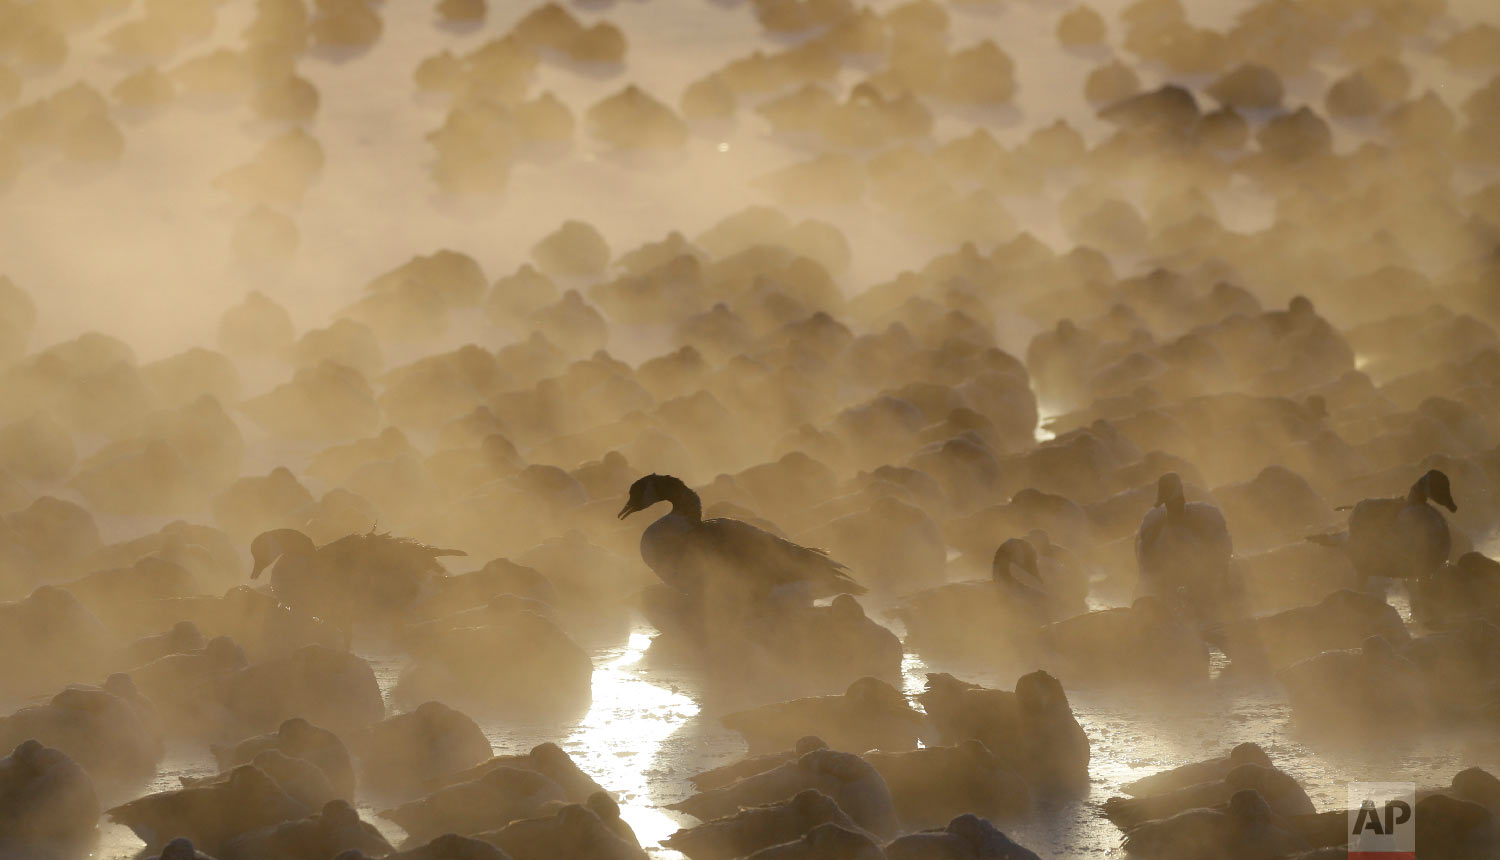 Geese huddle in the water as the sun rises at the harbor in Port Washington, Wis., on Wednesday, Jan. 30, 2019.  (AP Photo/Jeffrey Phelps)